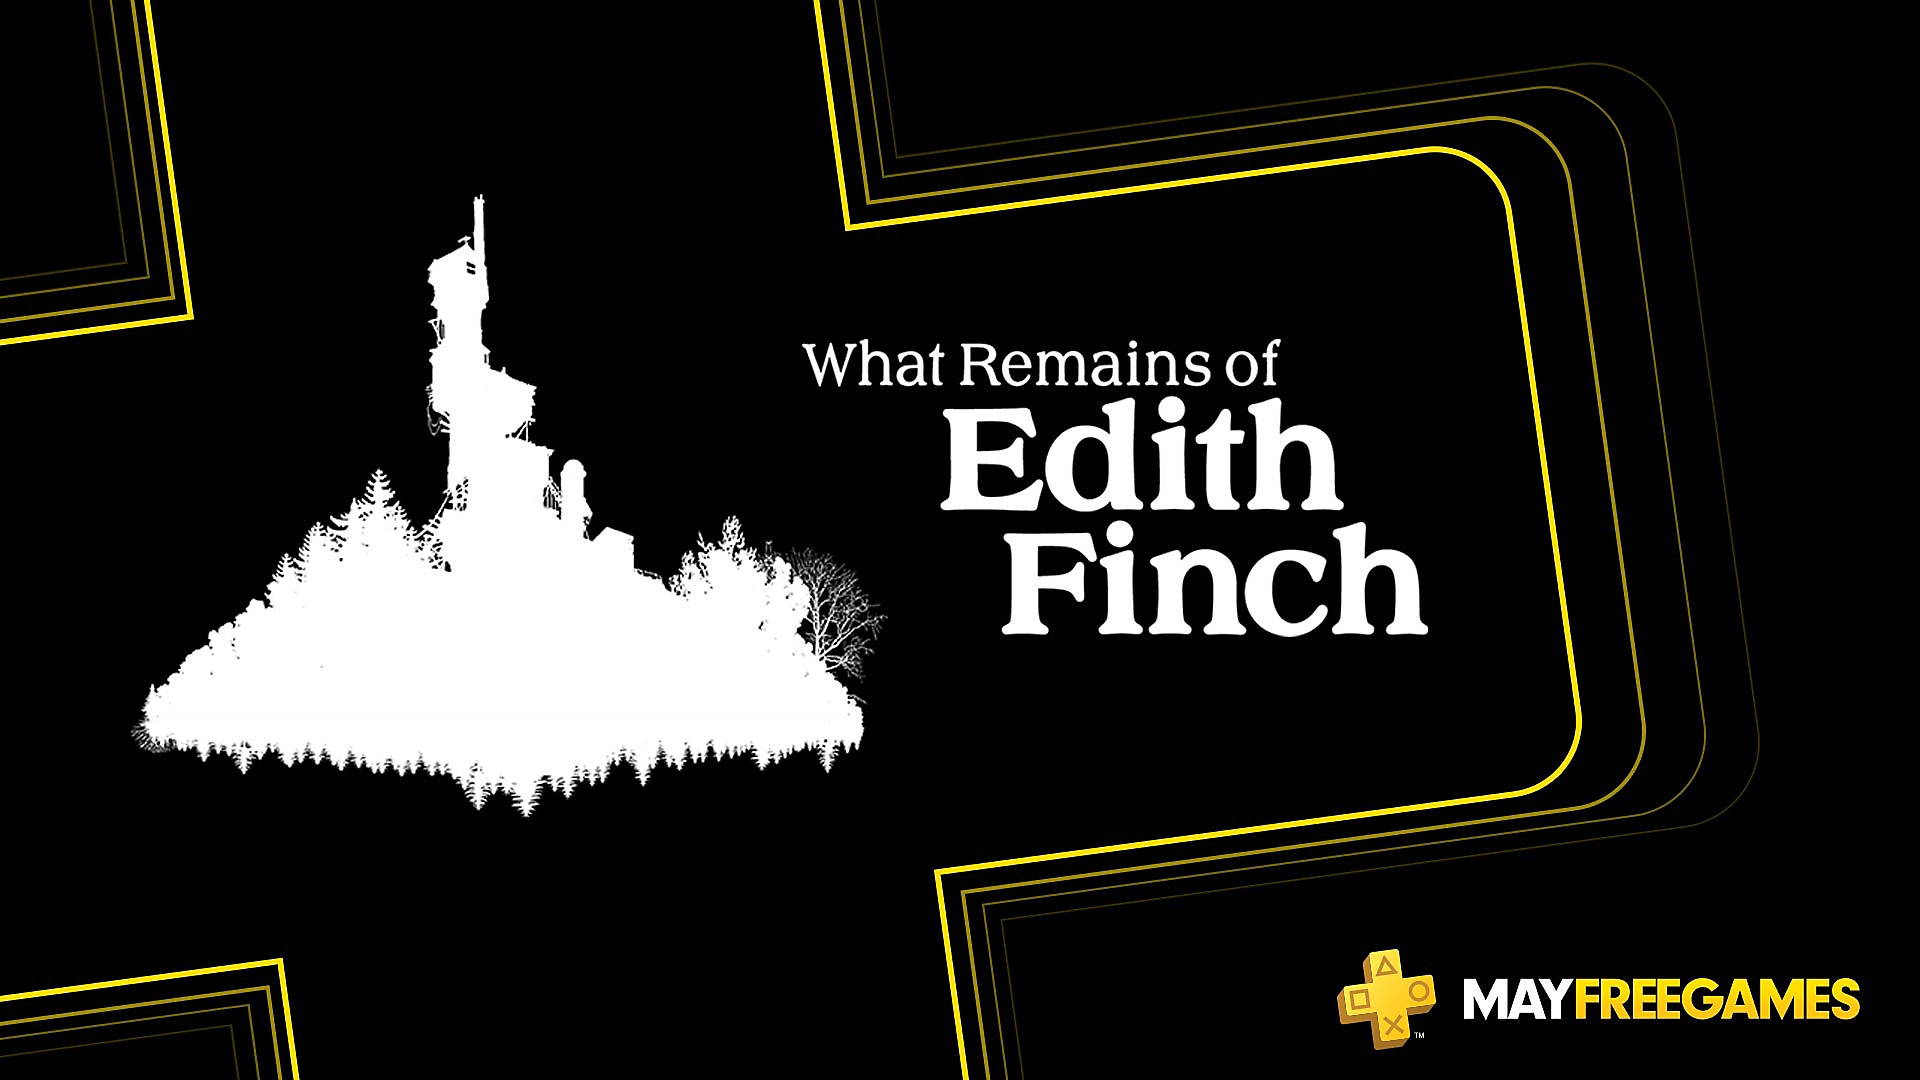 Click here to get What Remains of Edith Finch free from the PlayStation Store for PlayStation Plus members